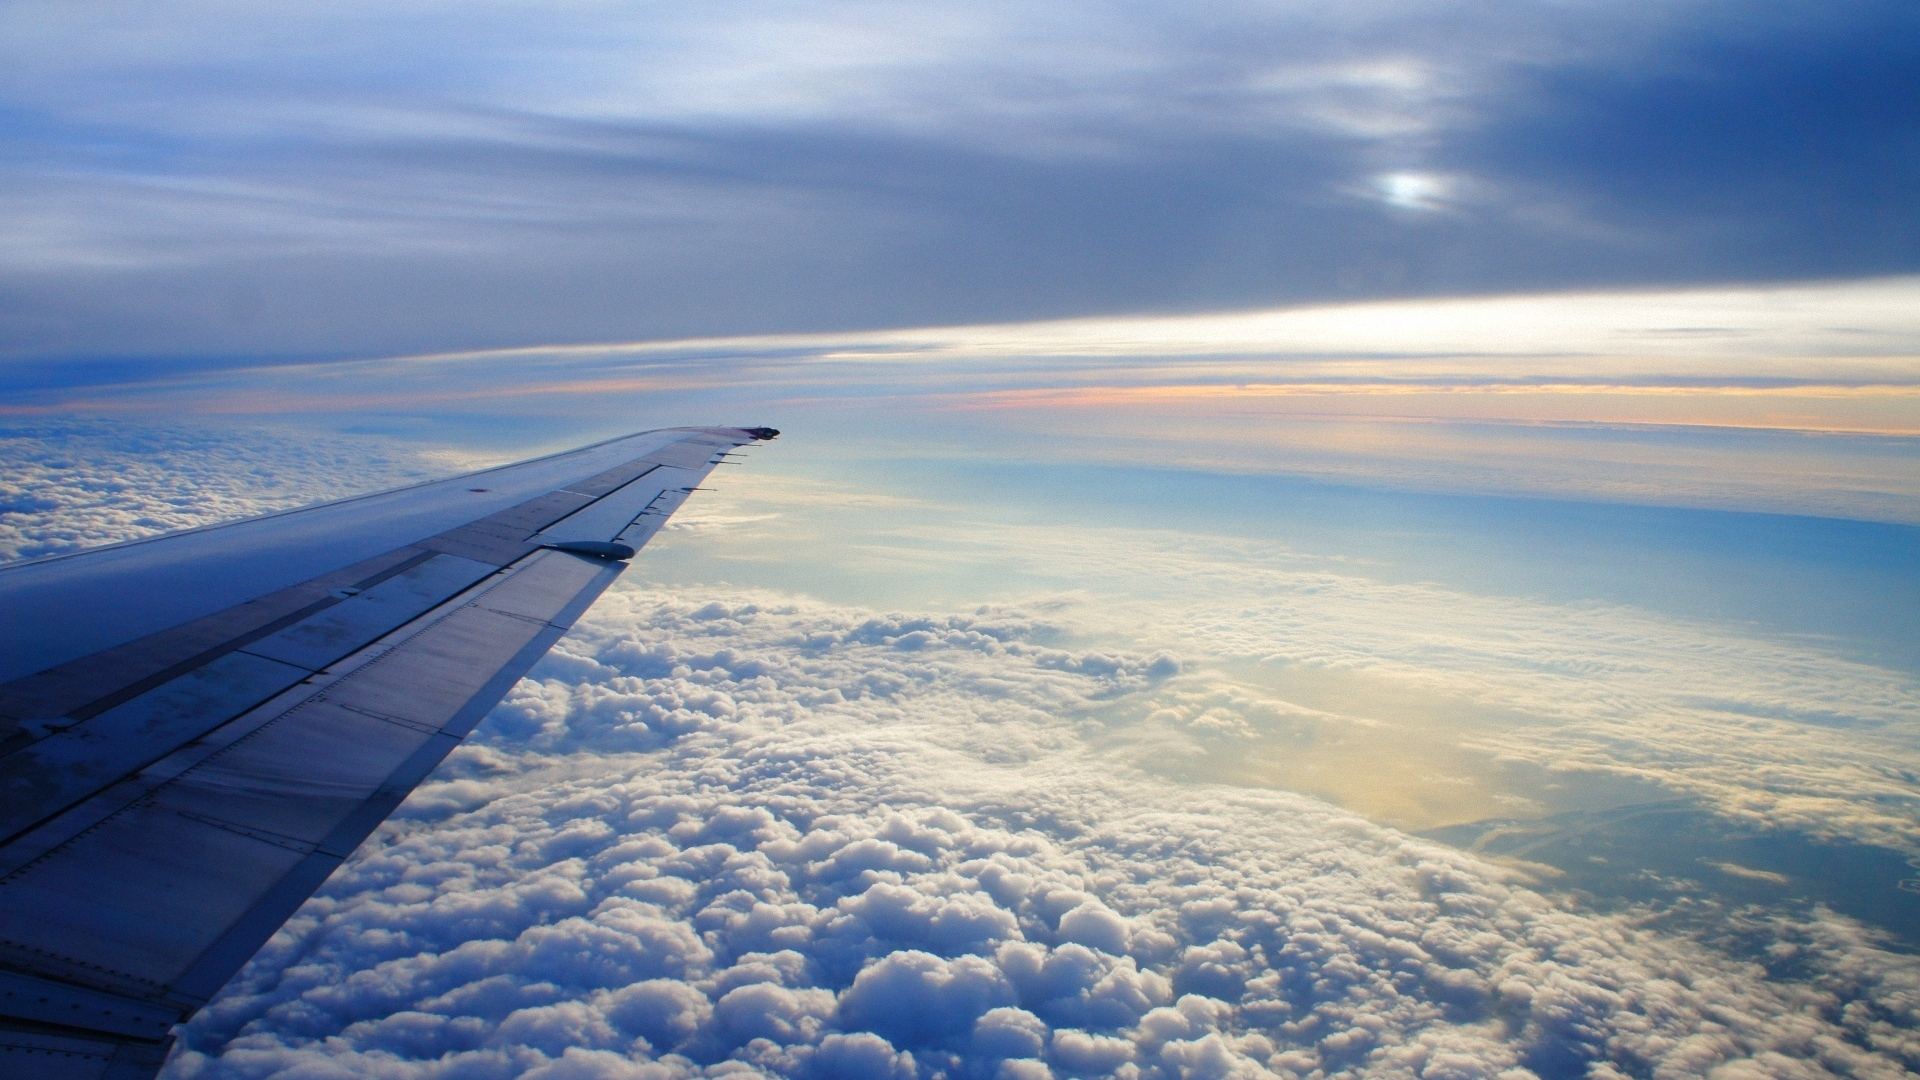 Download wallpaper 1920x1080 sky altitude clouds airplane wing download wallpaper 1920x1080 sky altitude clouds airplane wing flying soaring earth full hd 1080p hd background voltagebd Gallery